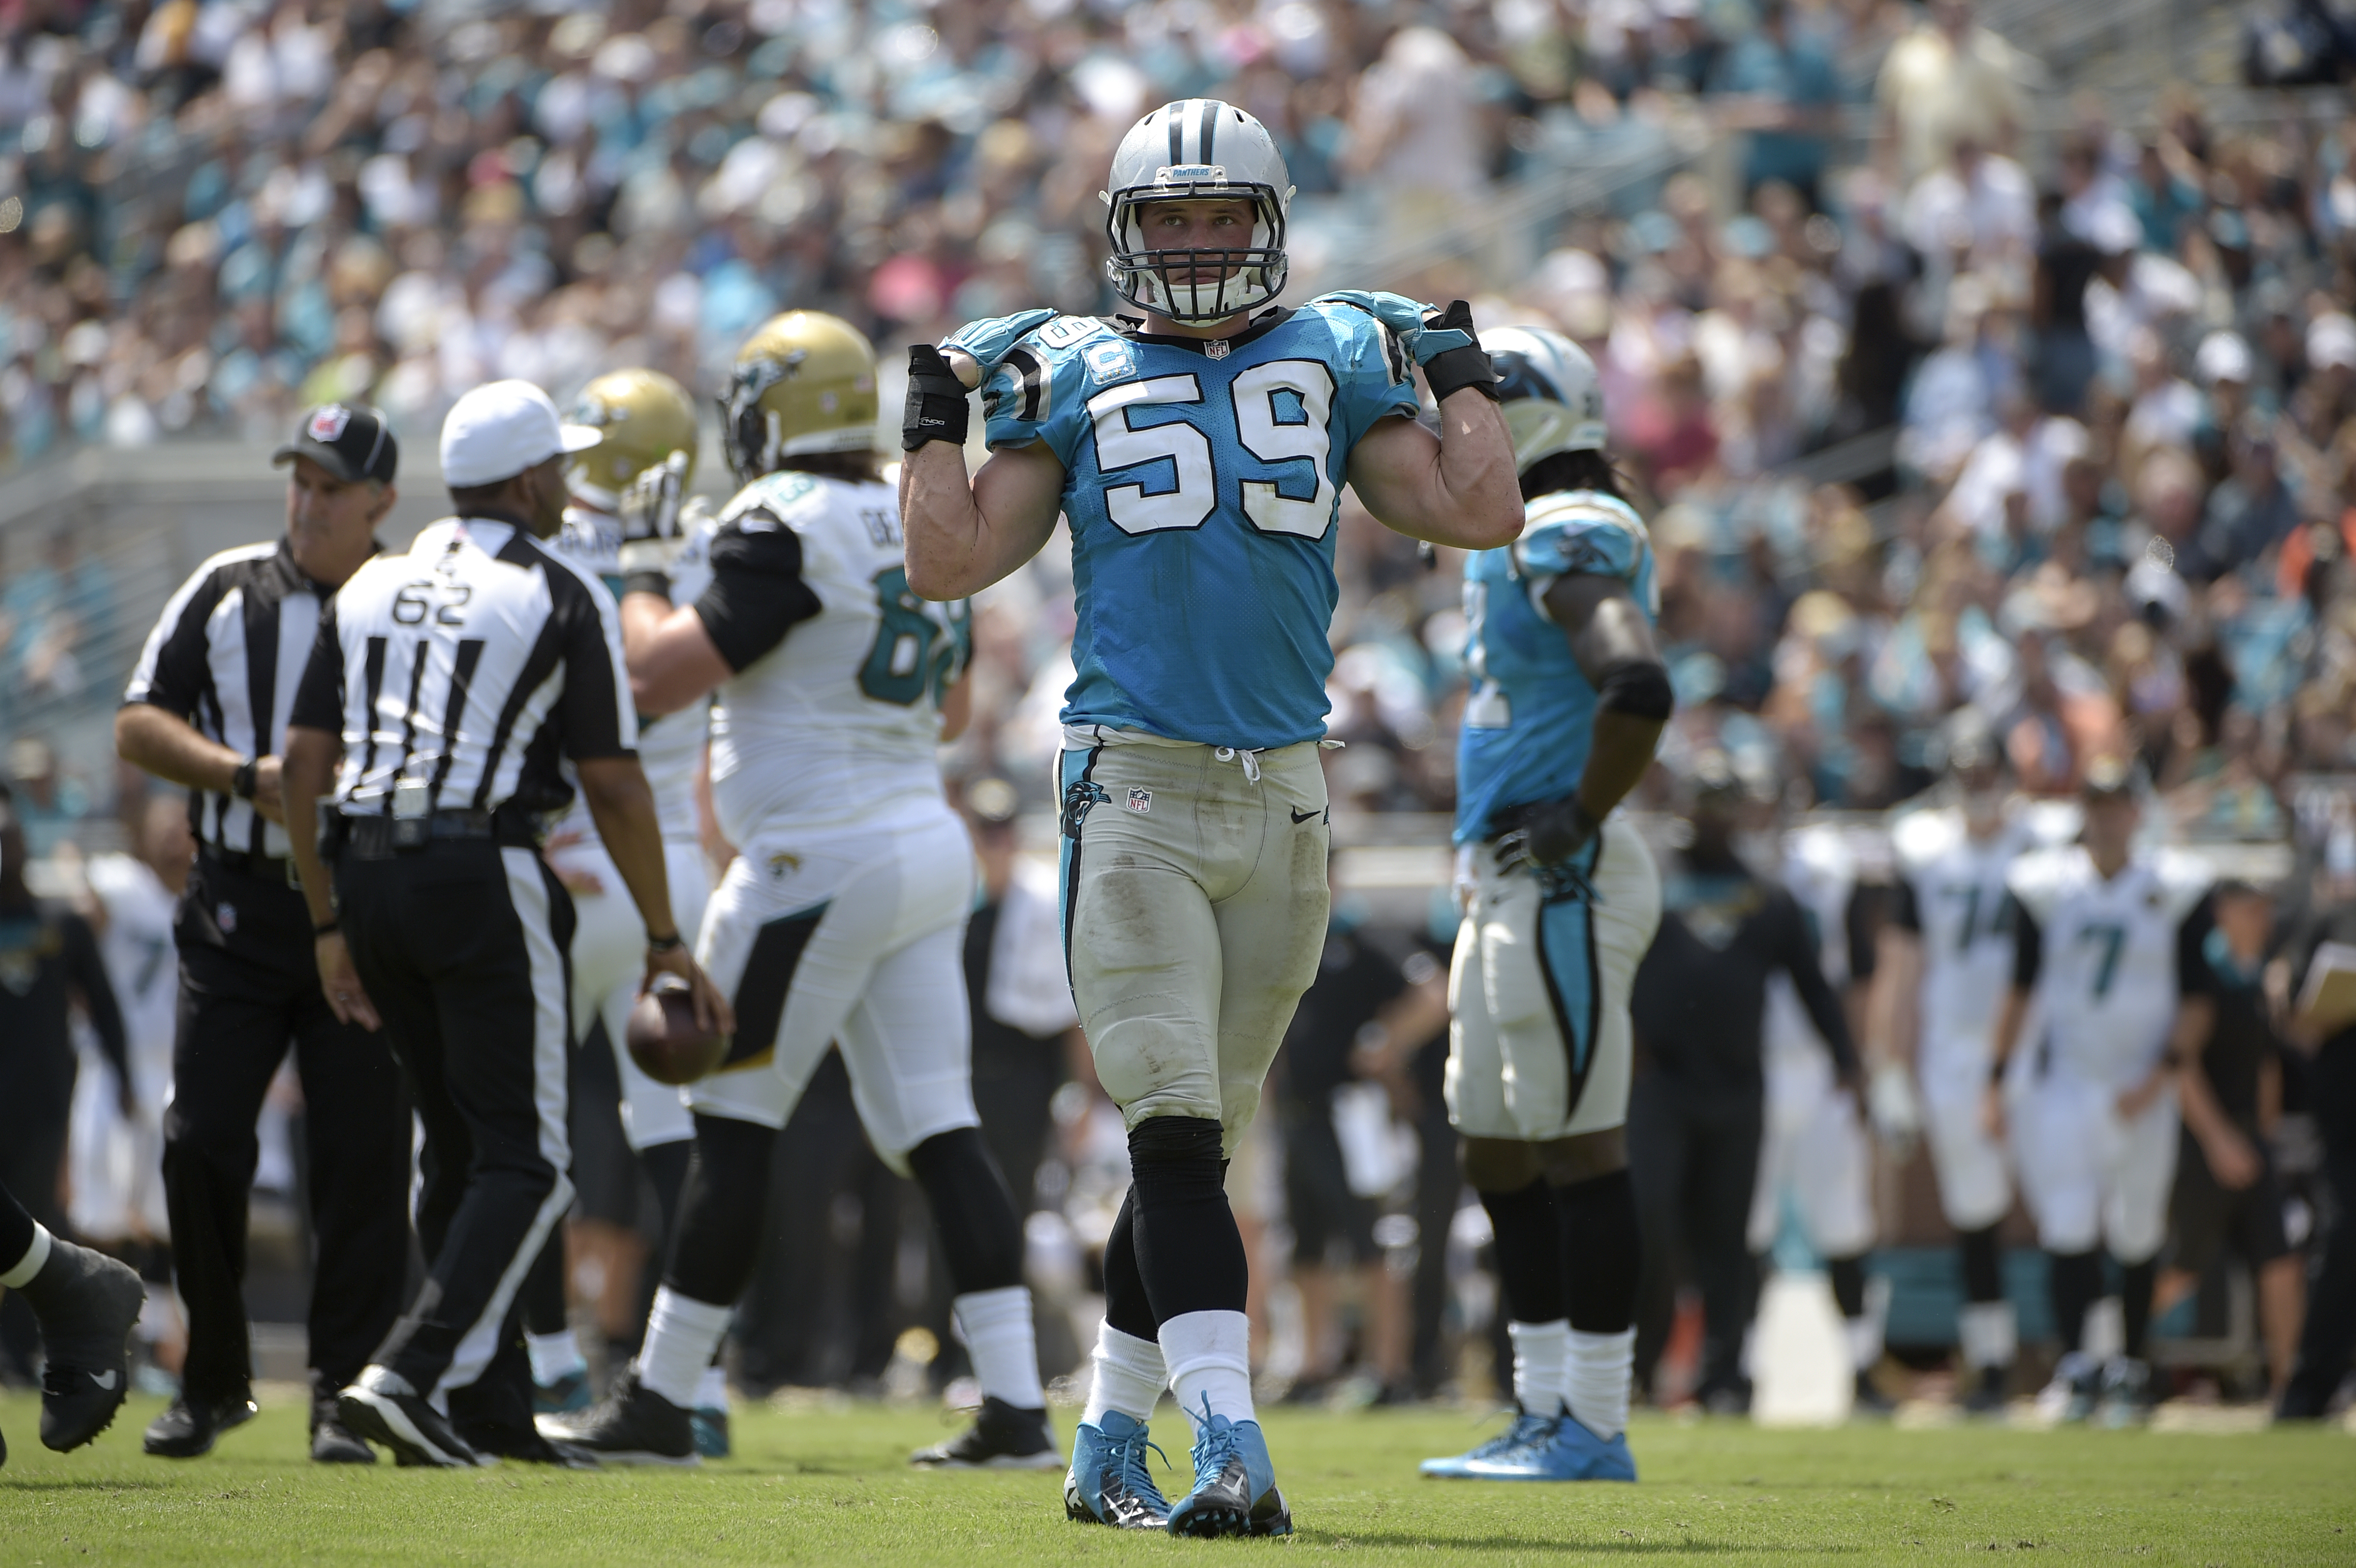 Carolina Panthers middle linebacker Luke Kuechly (59) adjusts his shoulder pads after making a tackle during the first half of an NFL football game against the Jacksonville Jaguars in Jacksonville, Fla., Sunday, Sept. 13, 2015. (AP Photo/Phelan M. Ebenhac